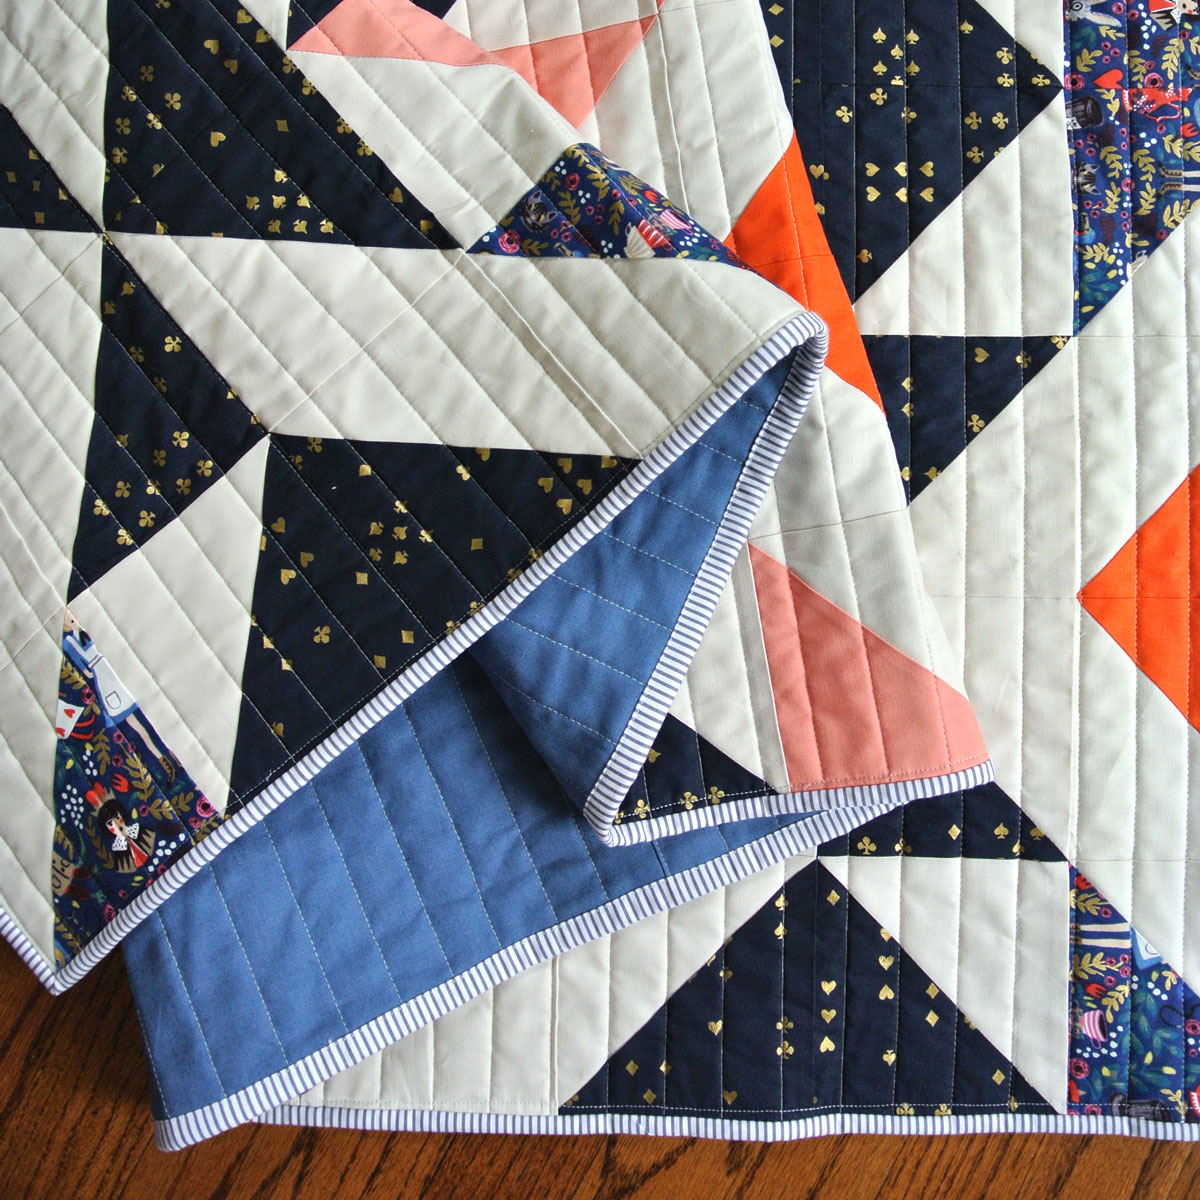 Nordic Triangles Quilt Pattern (Download) - Suzy Quilts : quilts - Adamdwight.com